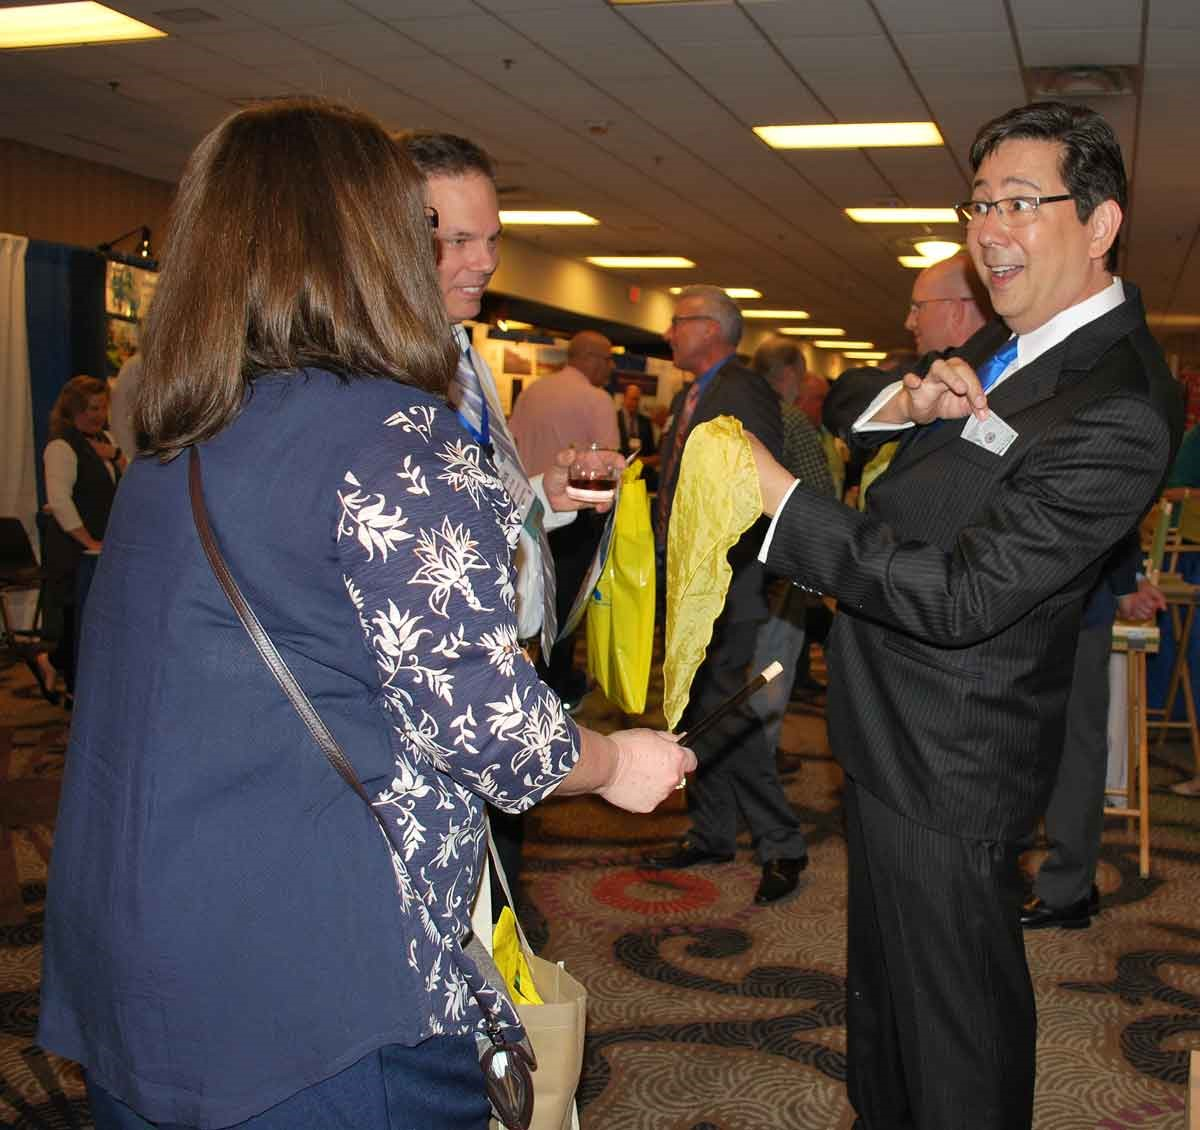 Magician David Hira was back, entertaining board members and others who visited RossTarrant Architects' booth at the Trade Show.